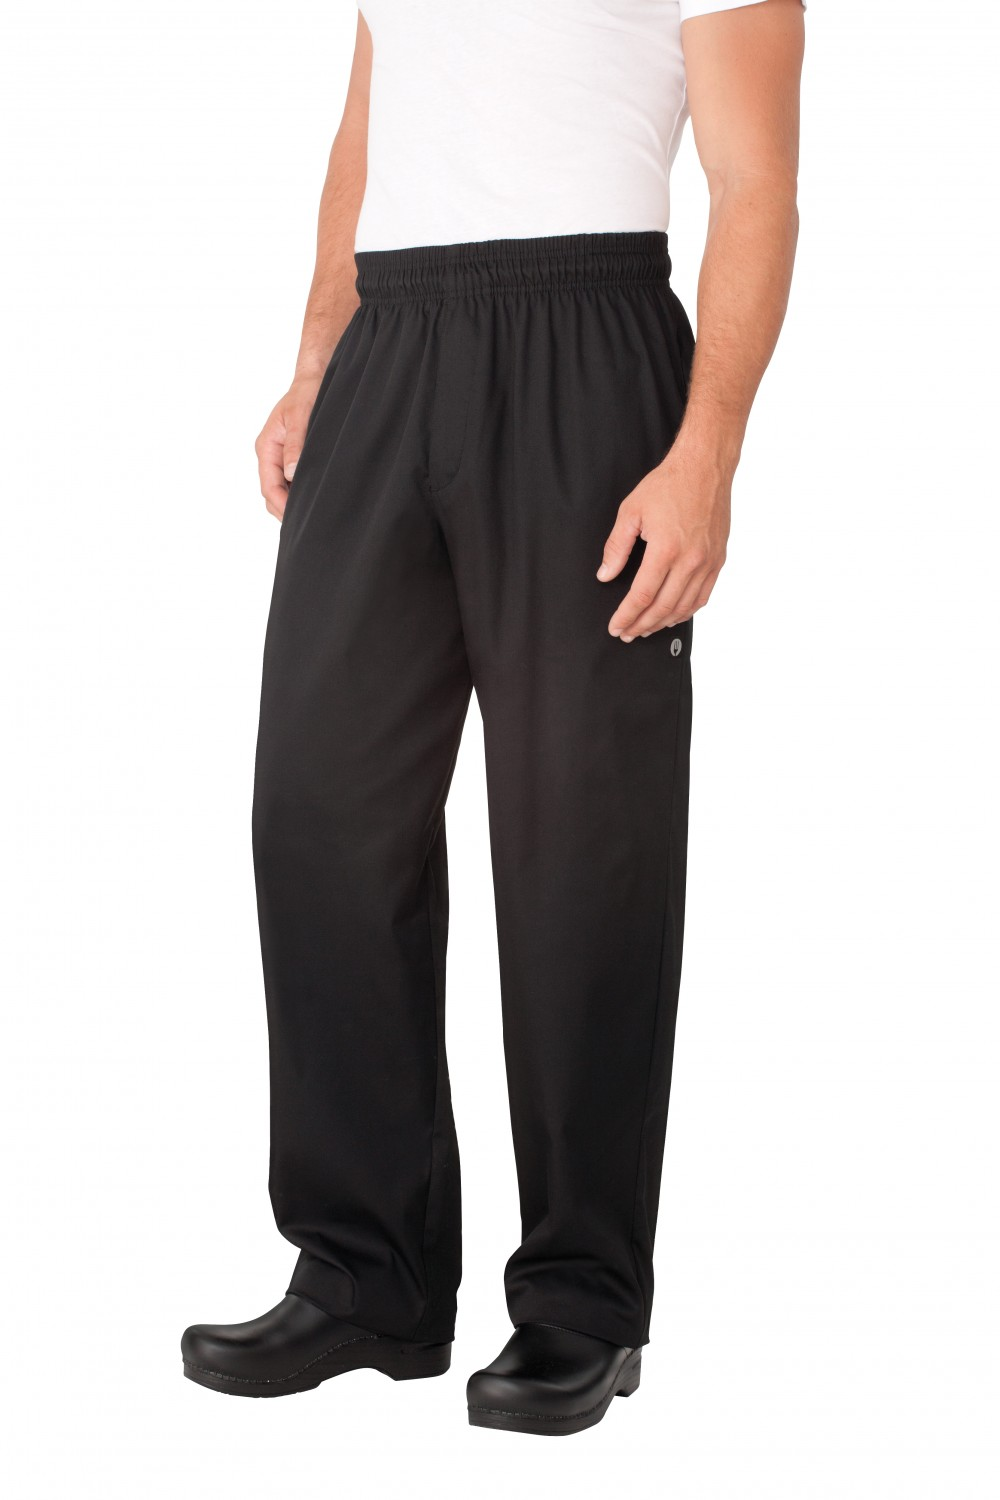 Chef Works NBBZ Black Baggy Chef Pants with Zipper